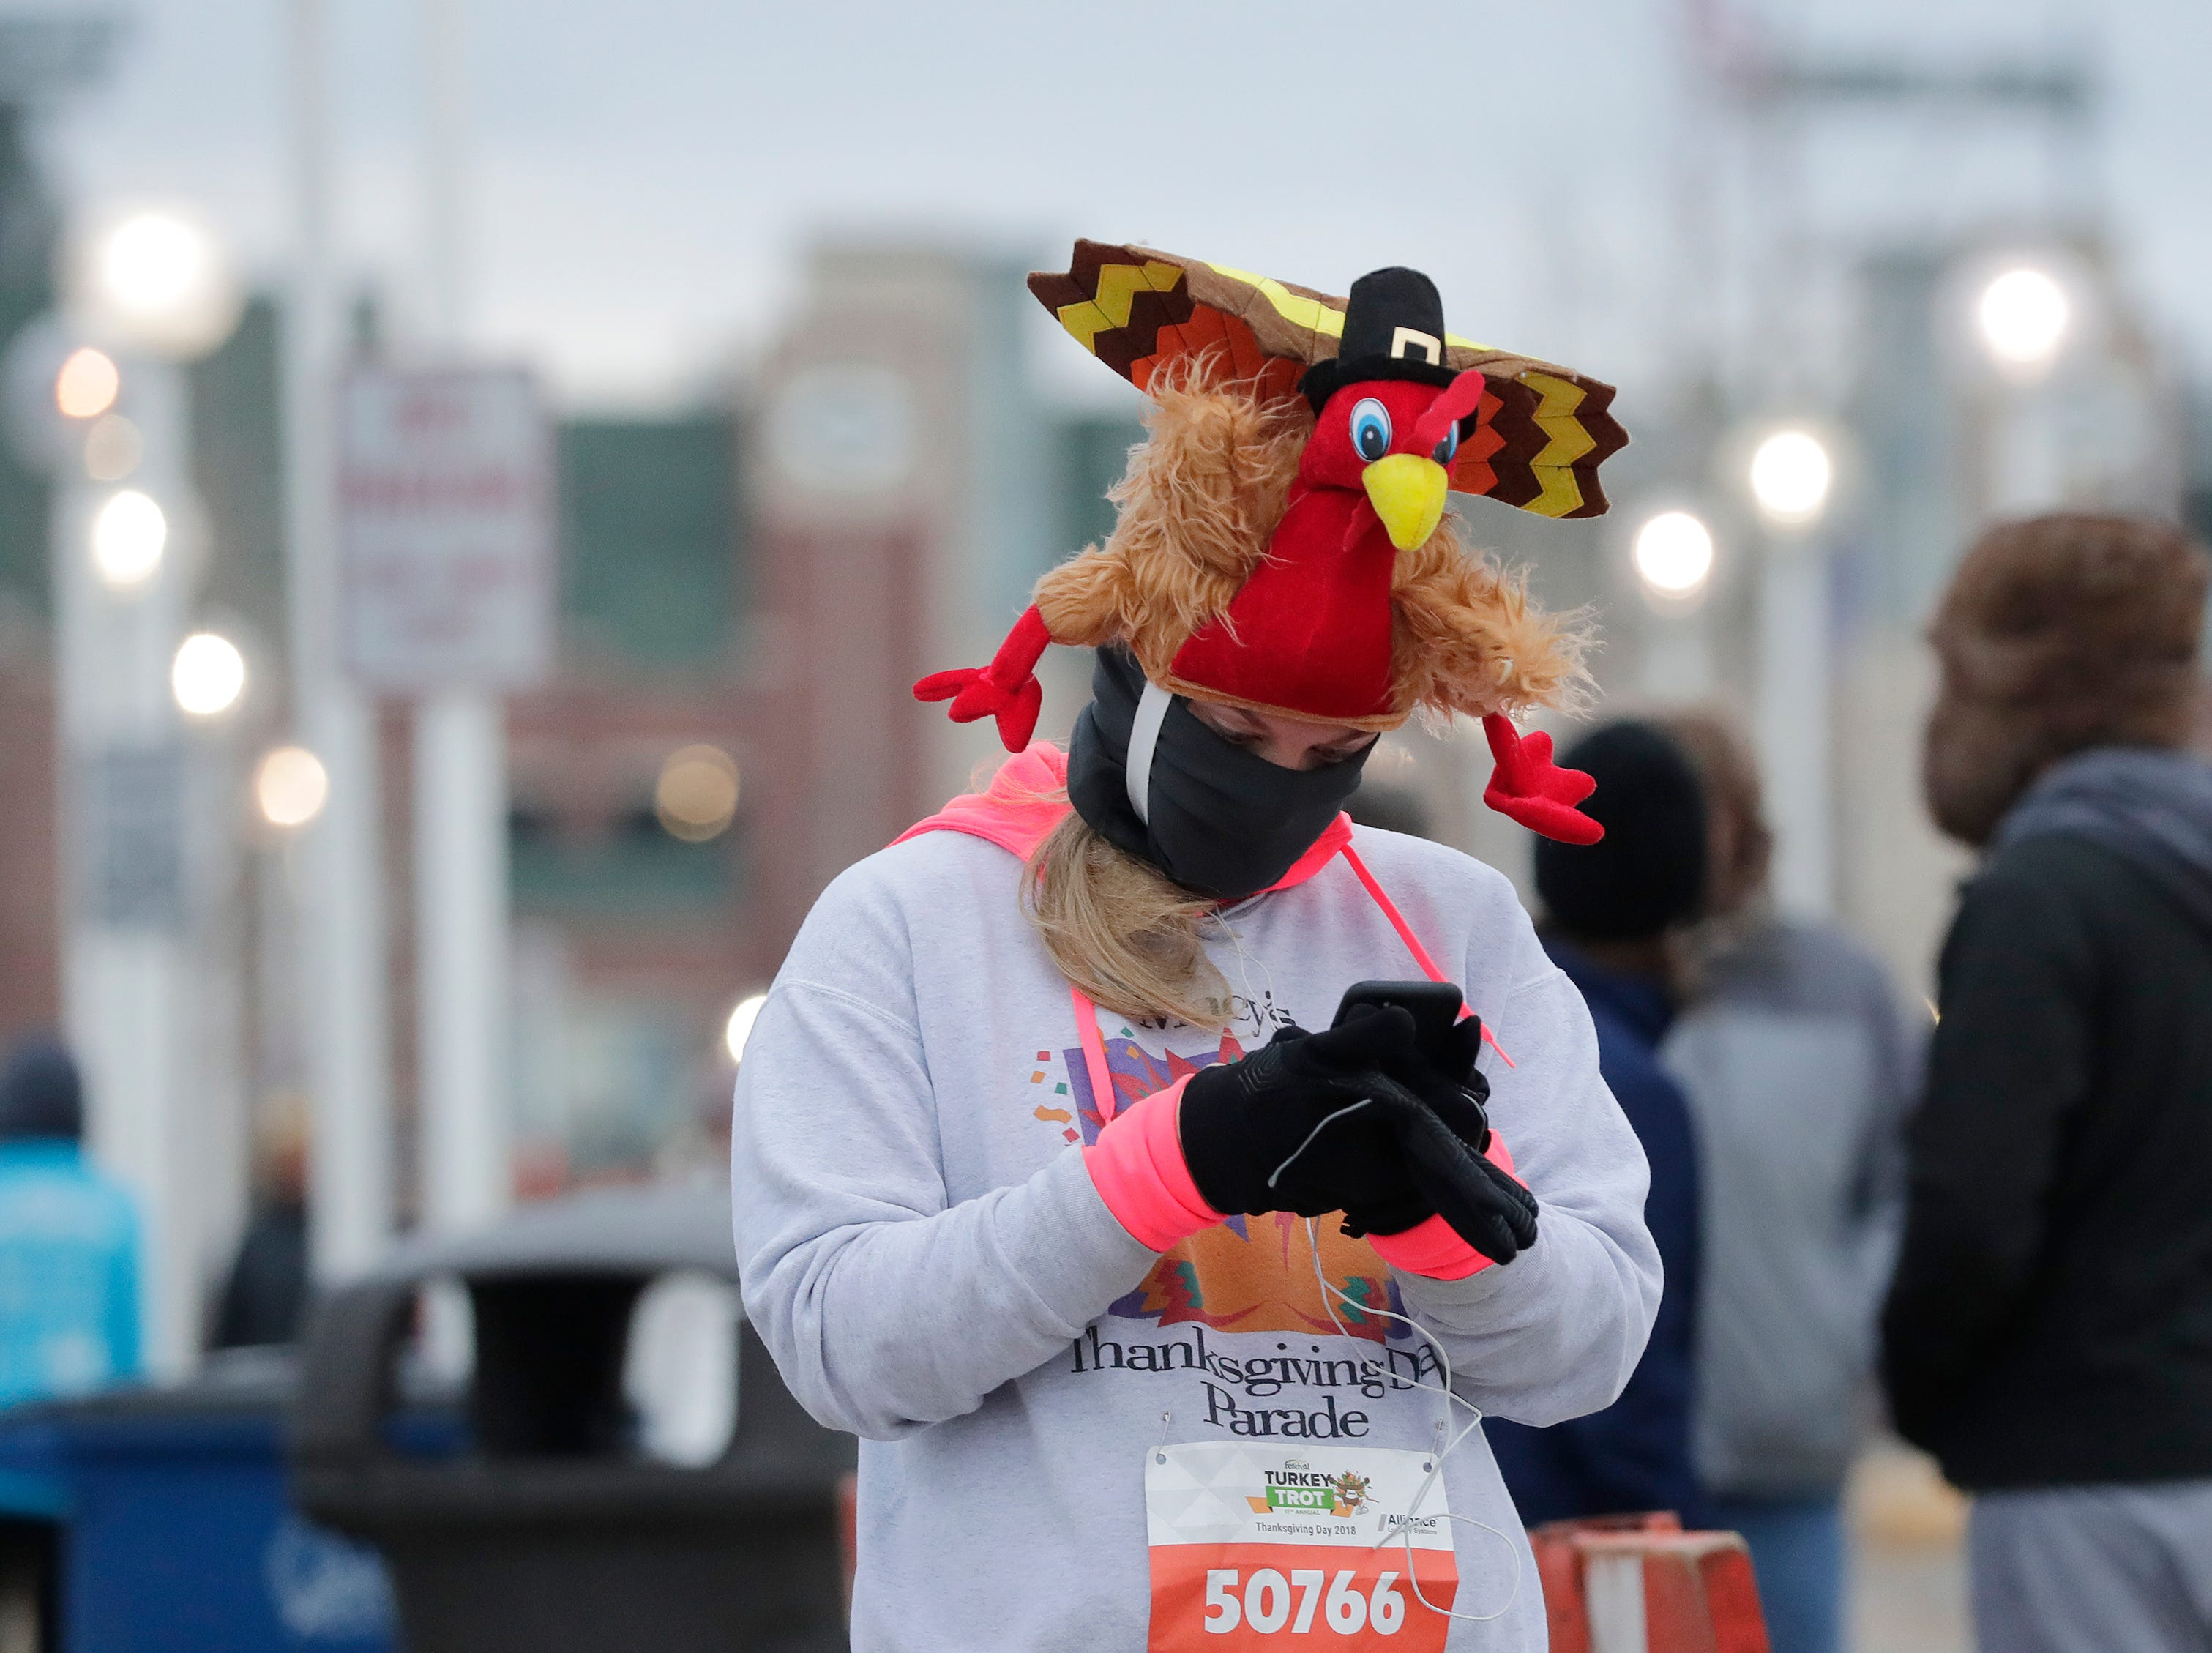 Melissa Wollering arrives for the annual Festival Foods Turkey Trot on Thursday, November 22, 2018 in Ashwaubenon, Wis.